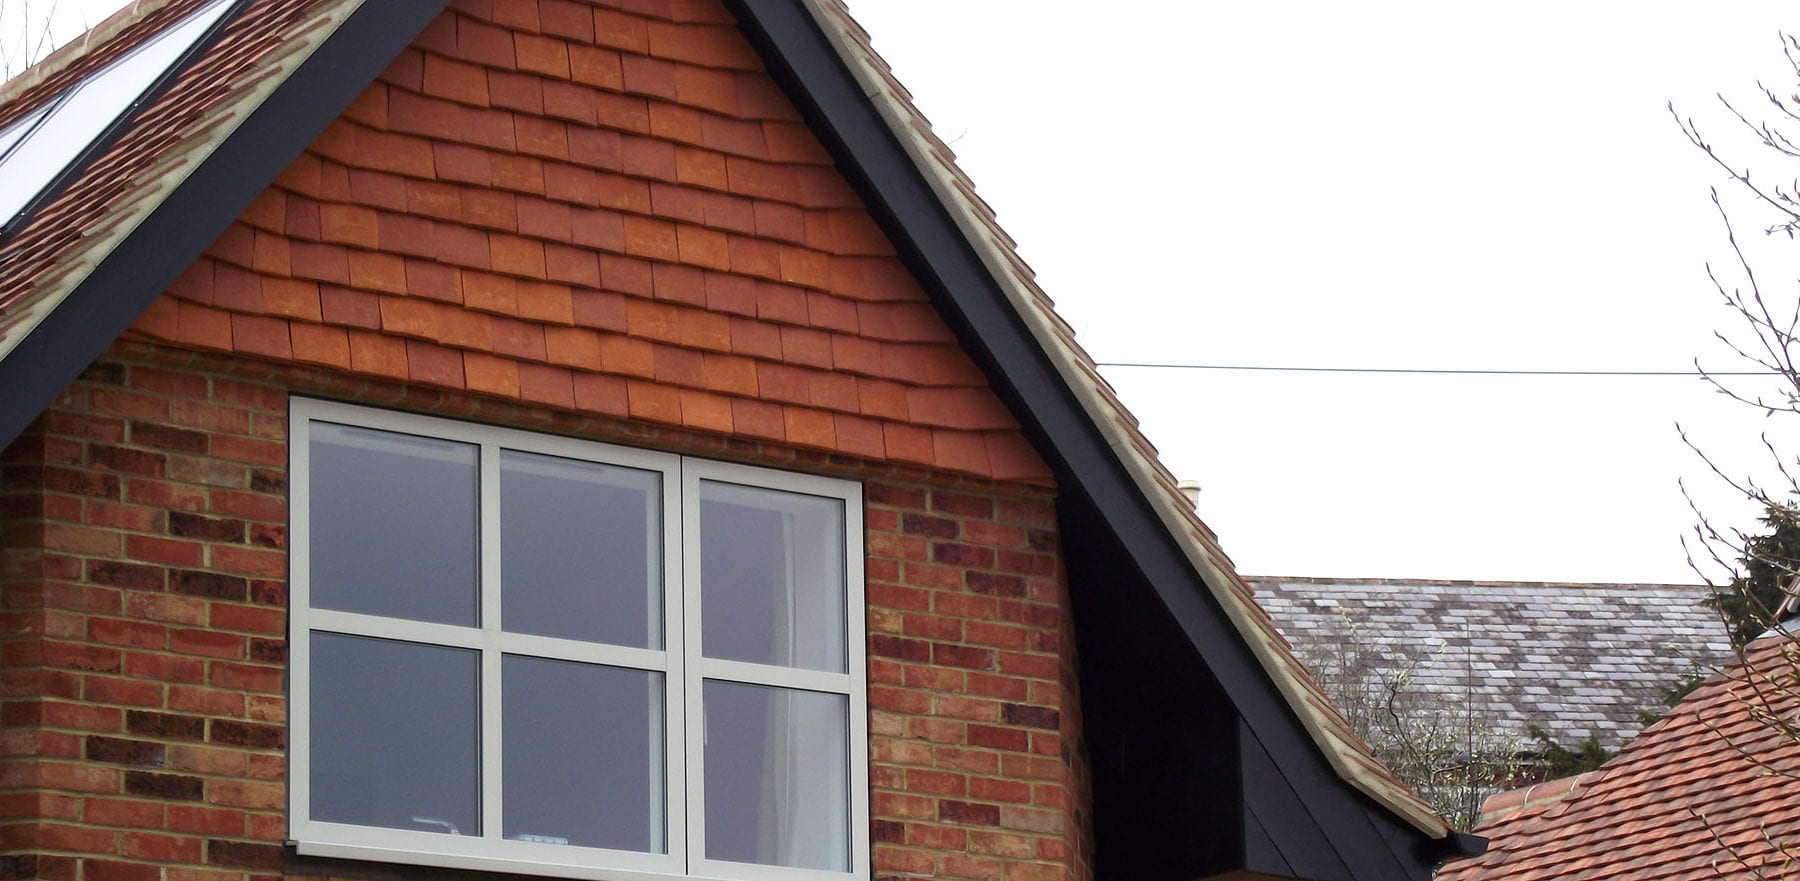 Lifestiles - Handcrafted Orange Clay Roof Tiles - Liss, England 4